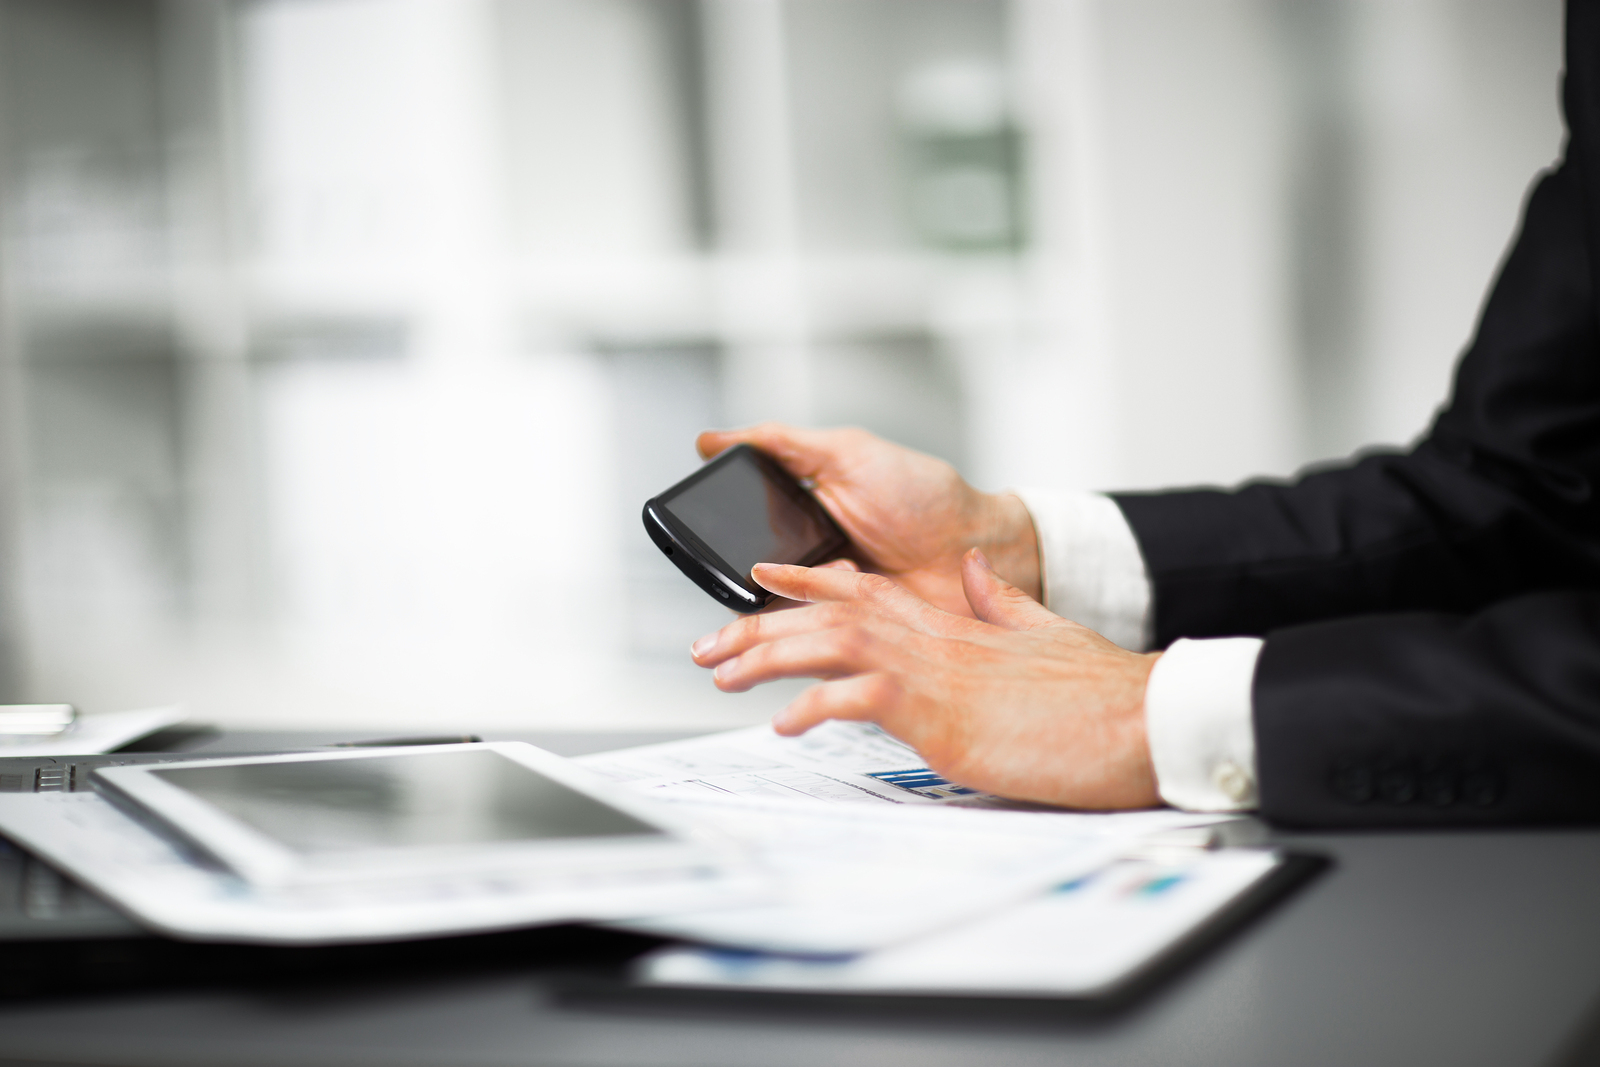 Hand to use a smartphone on the desktop in the office